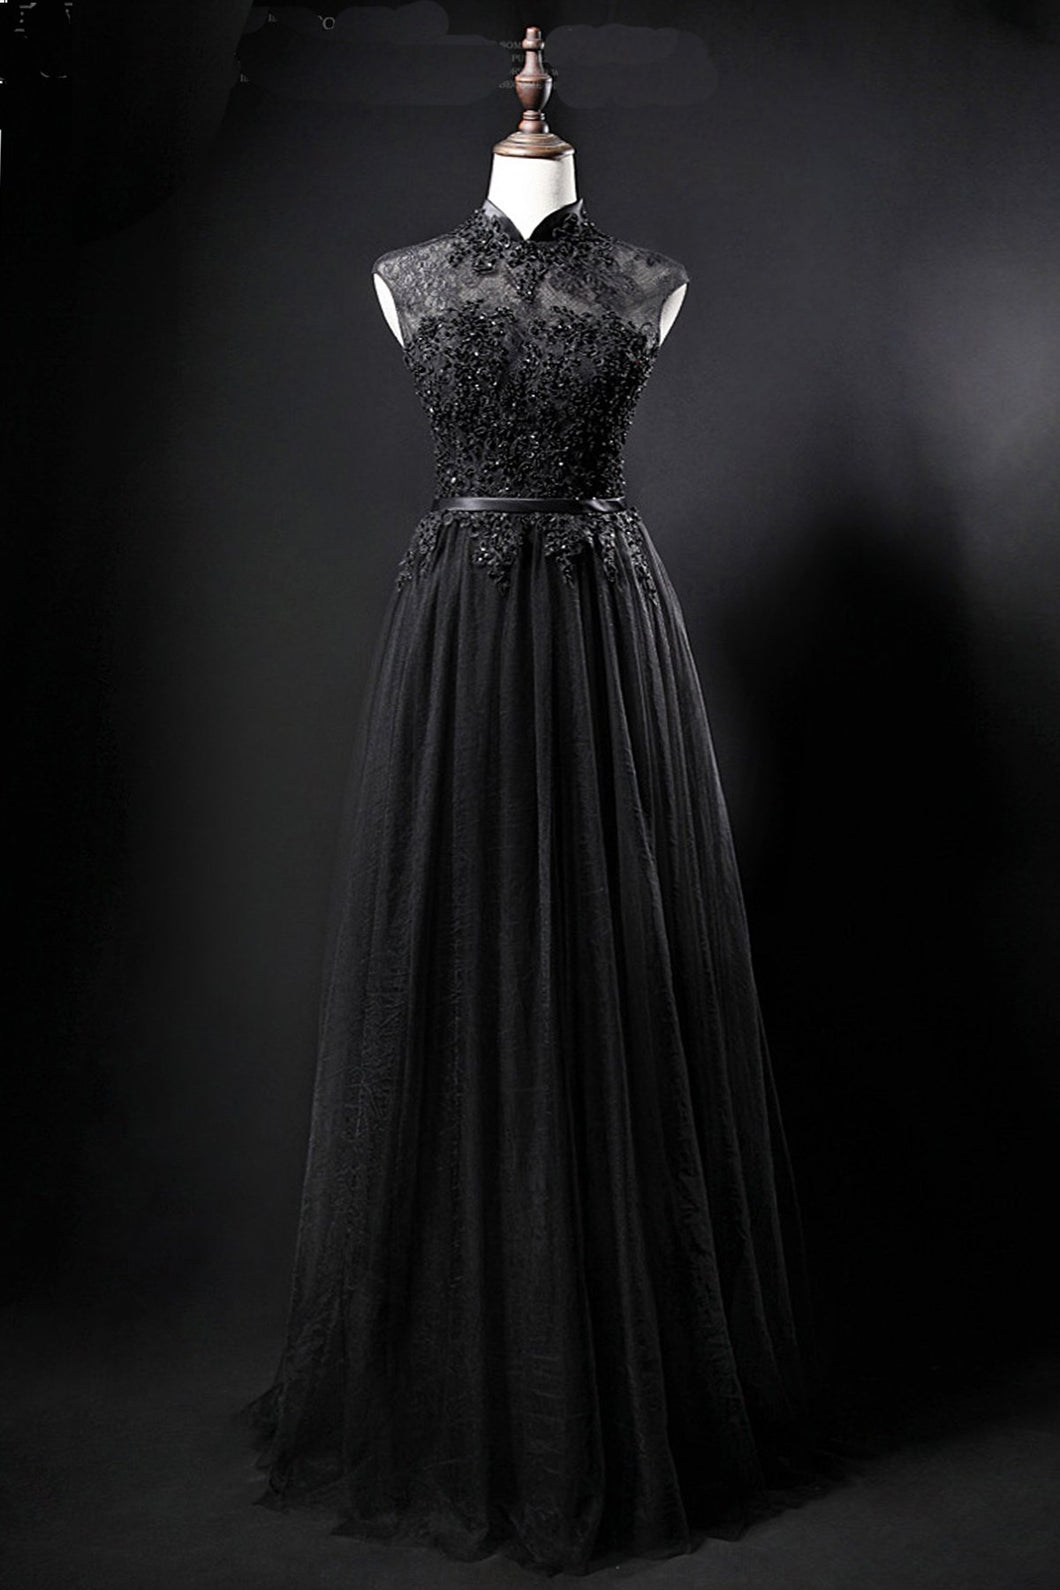 2019 Prom Dresses | Black tulle high neck long a line evening dress, black lace top formal prom dress